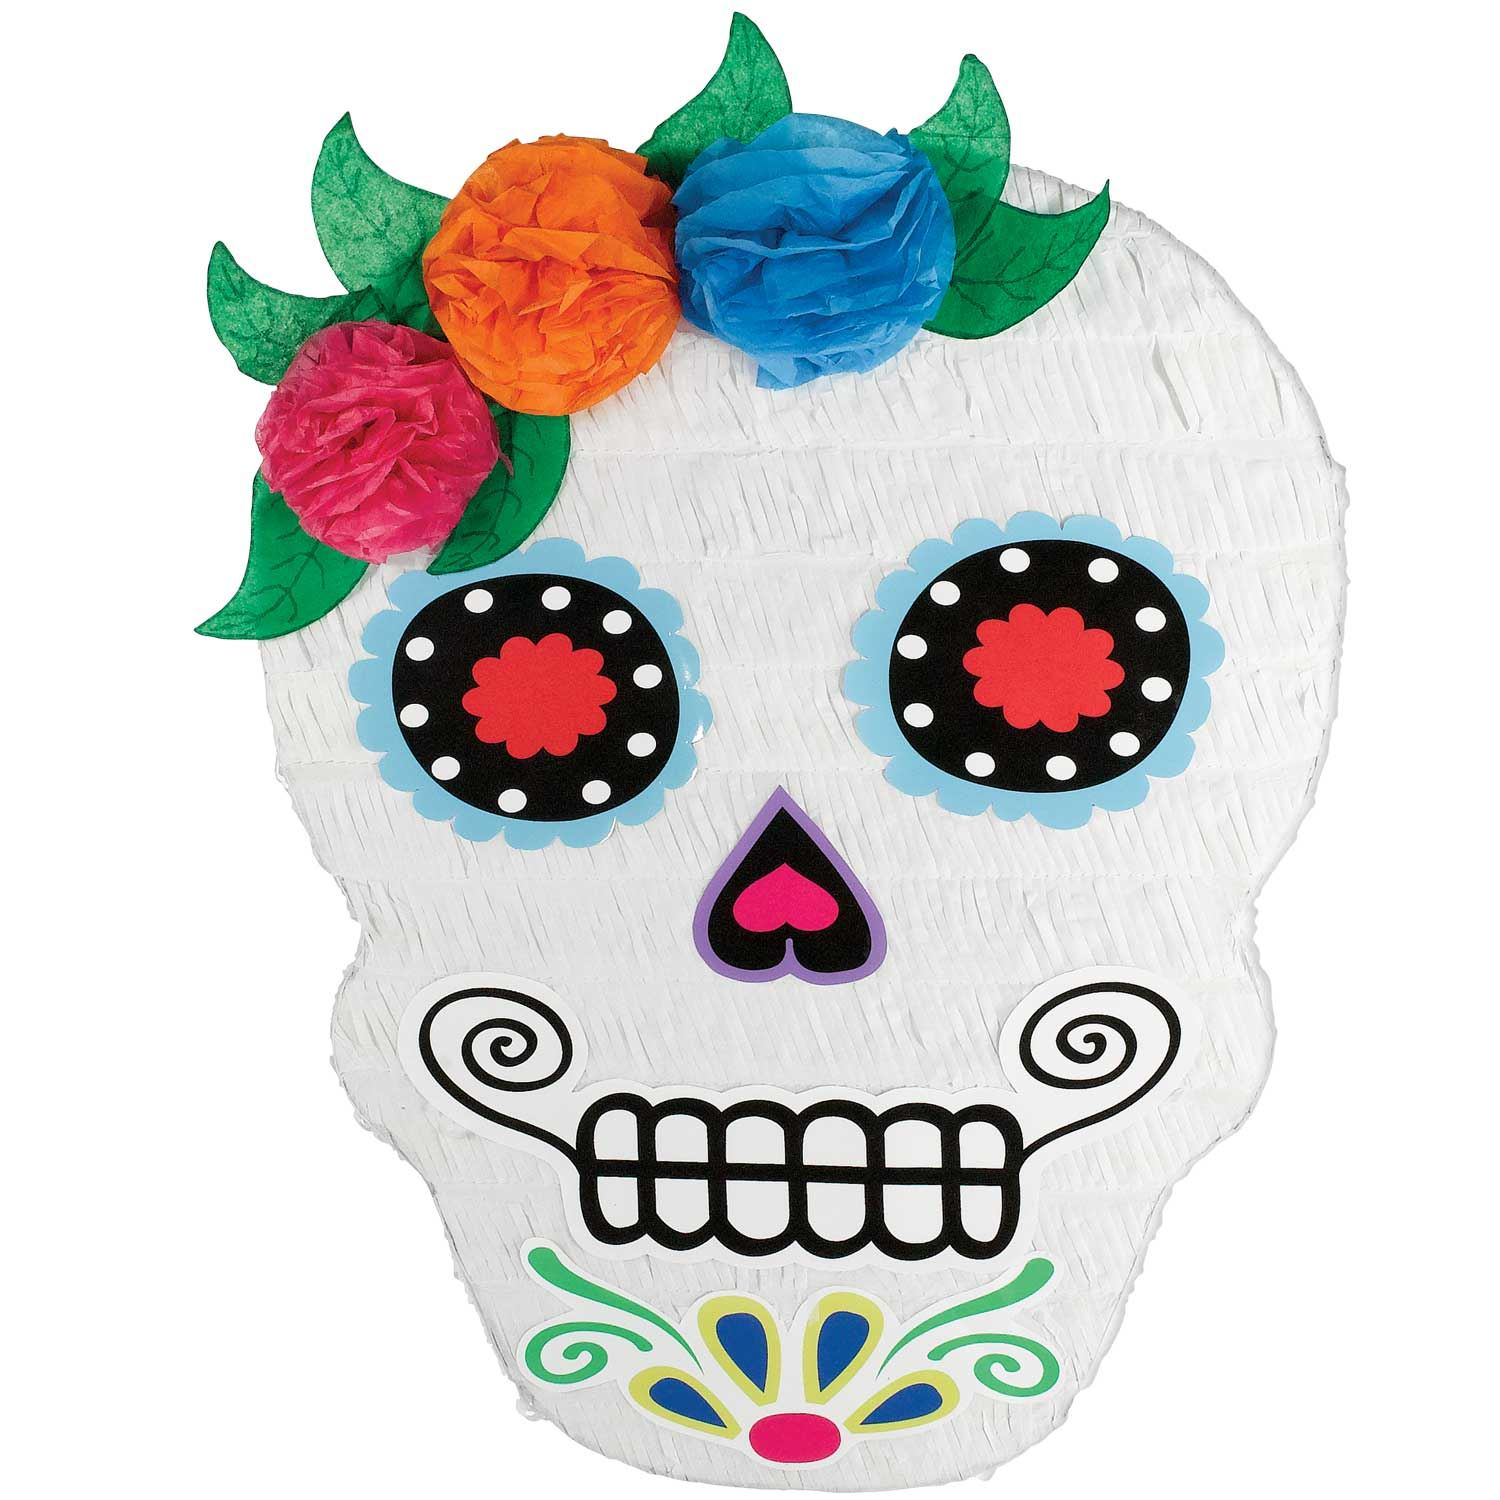 Day of The Dead Halloween Sugar Skull Party Decorations Favours   eBay